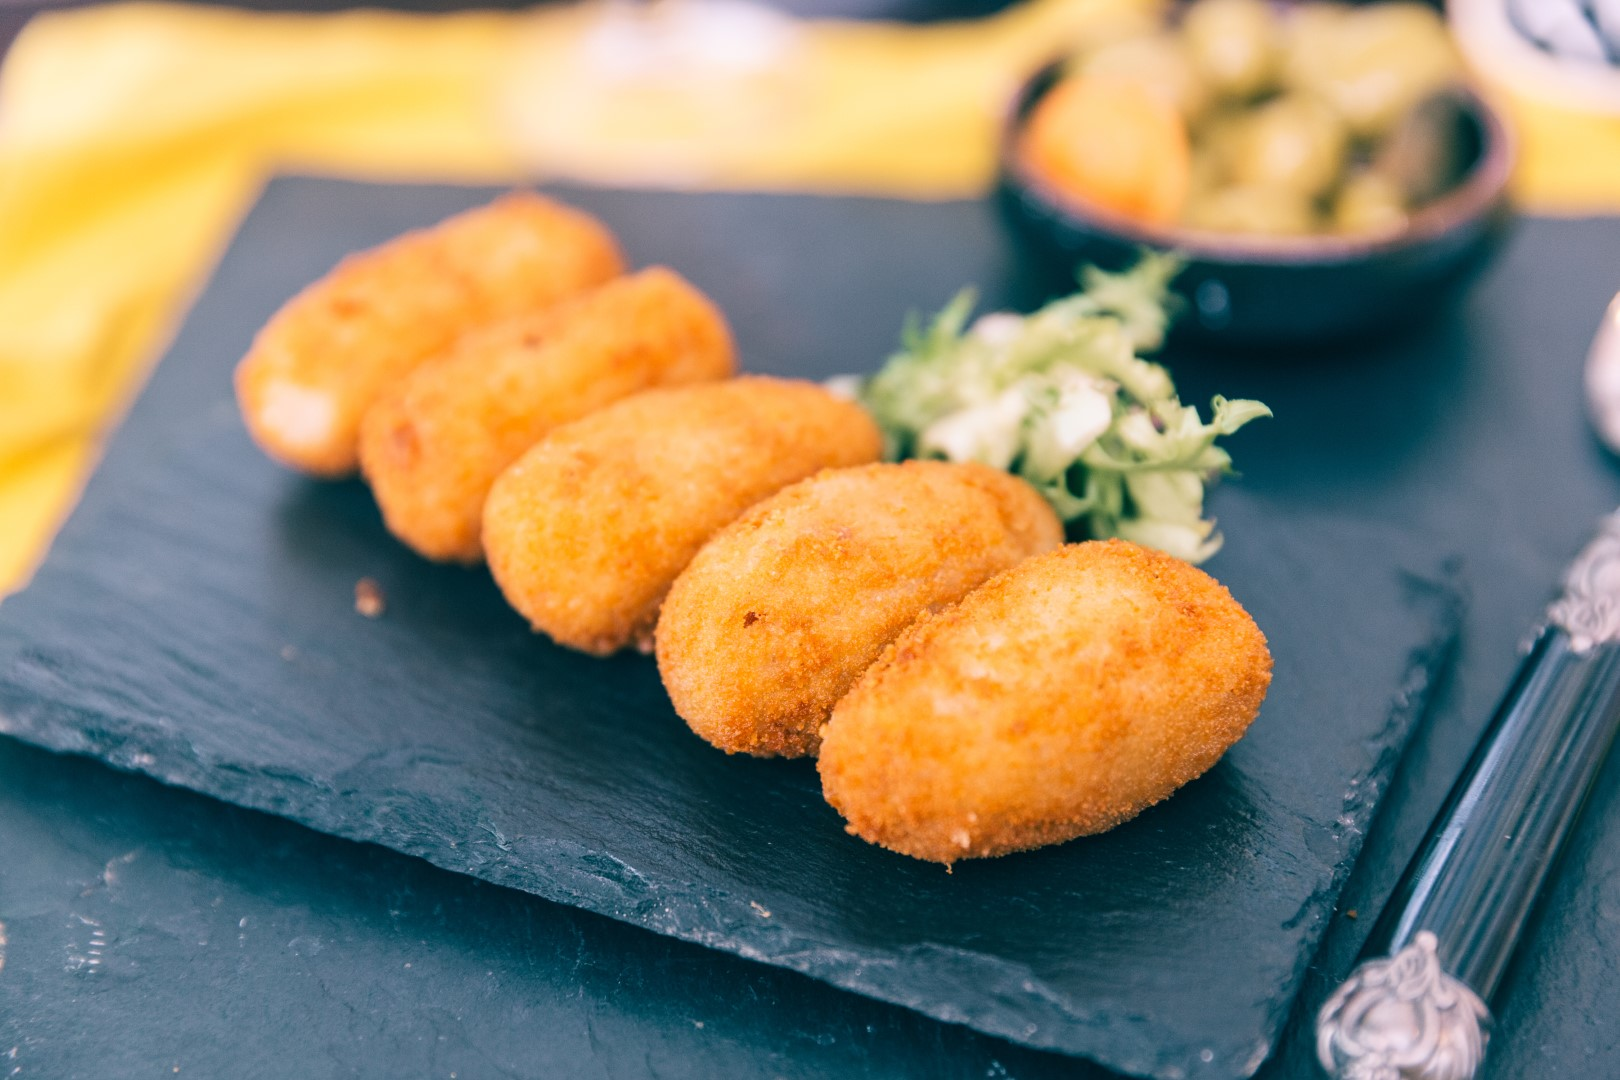 Croquetas with chicken